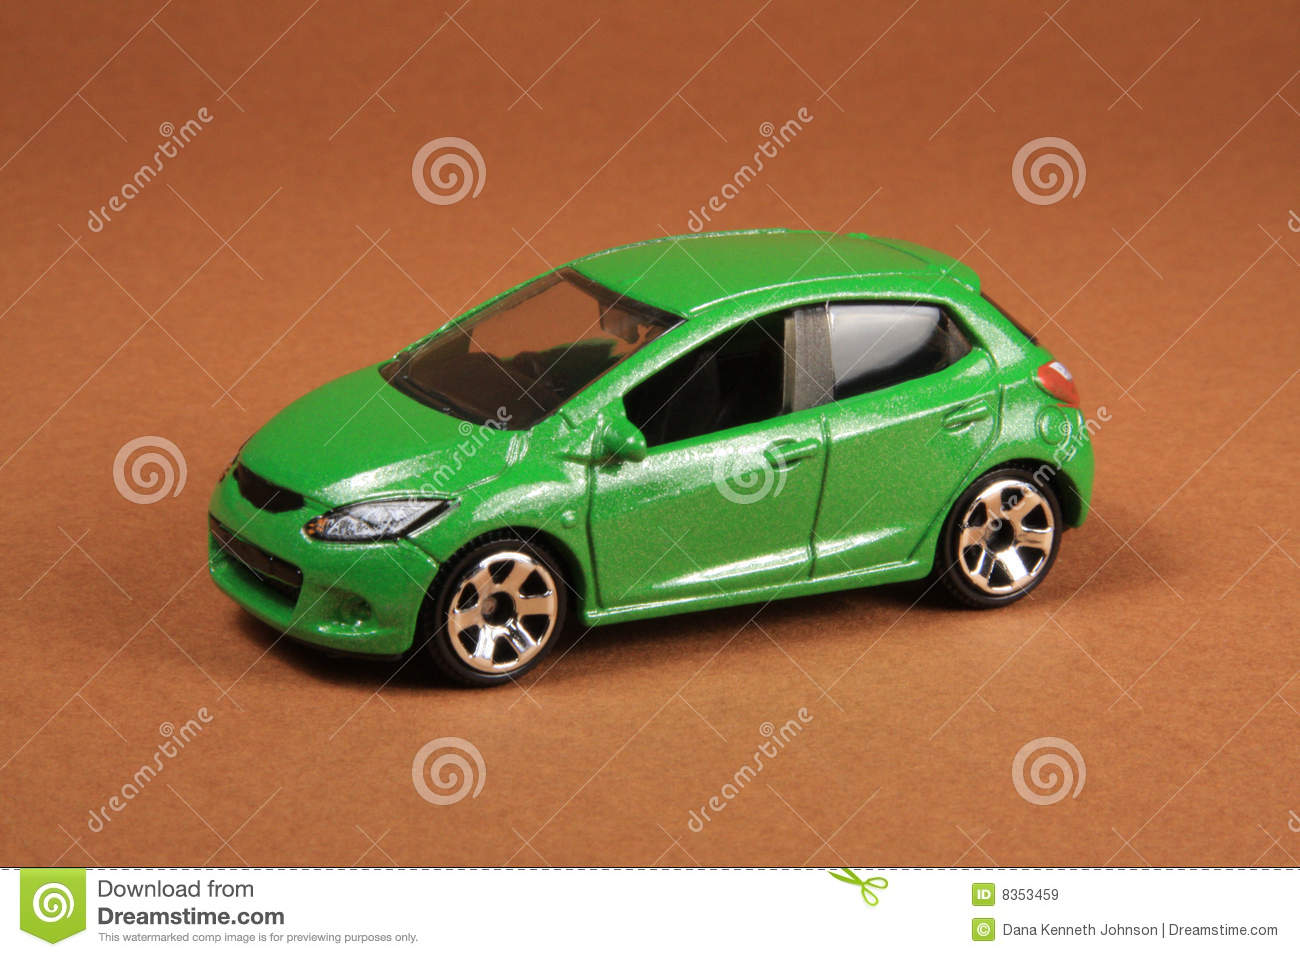 Model Toy Car Royalty Free Stock Images - Image: 8353459